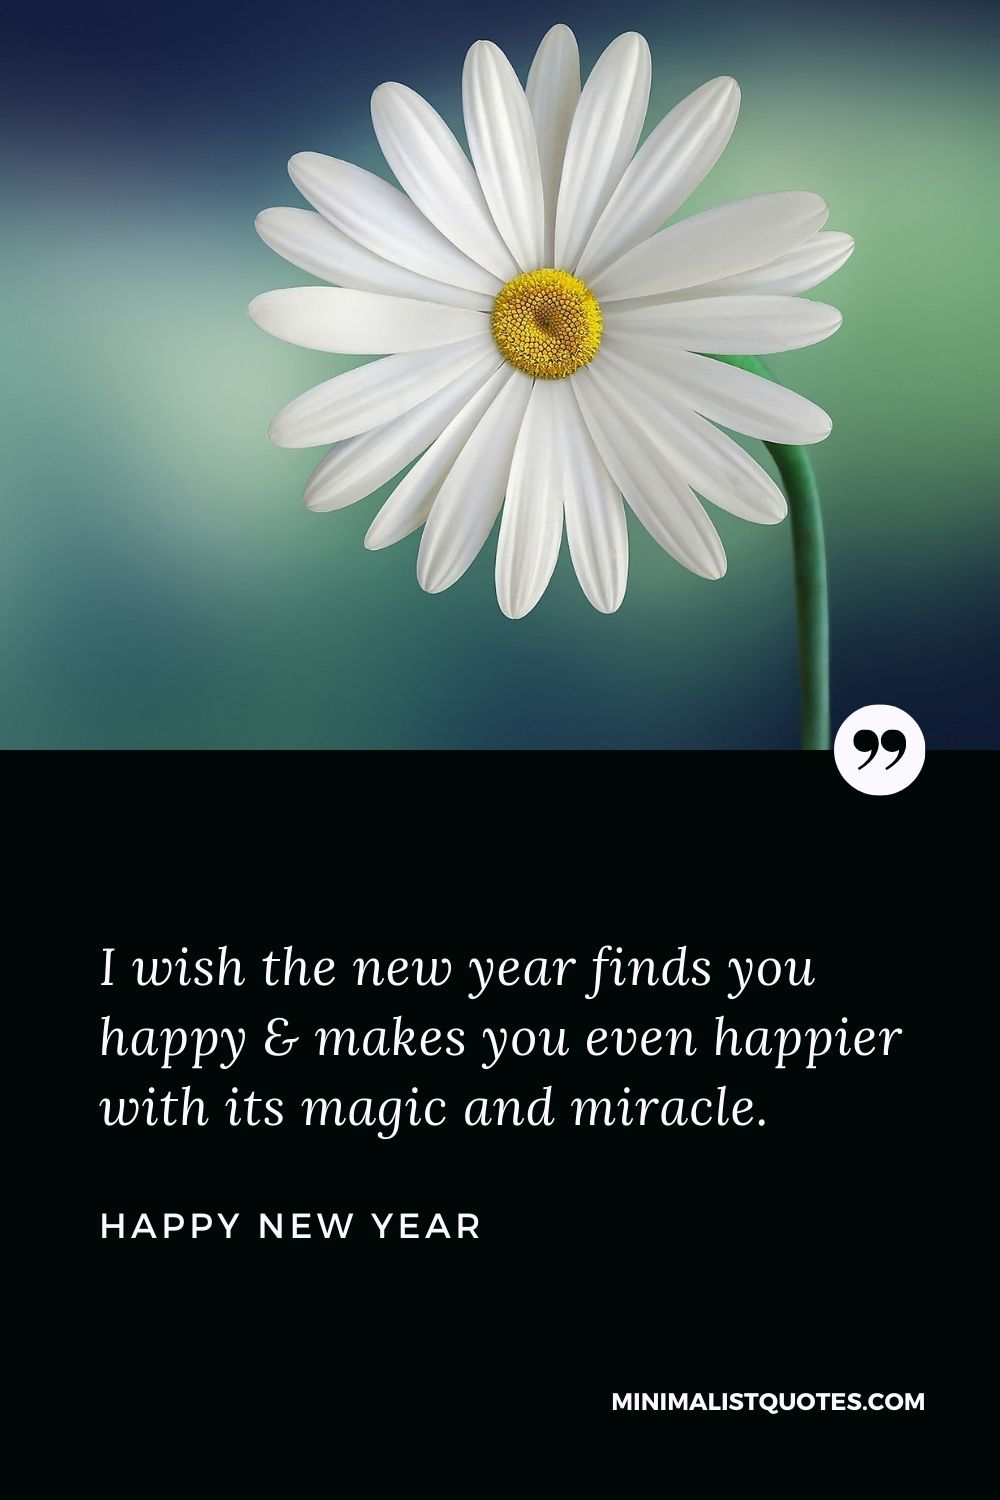 New Year Wish - I wish the new year finds you happy & makes you even happier with its magic and miracle.